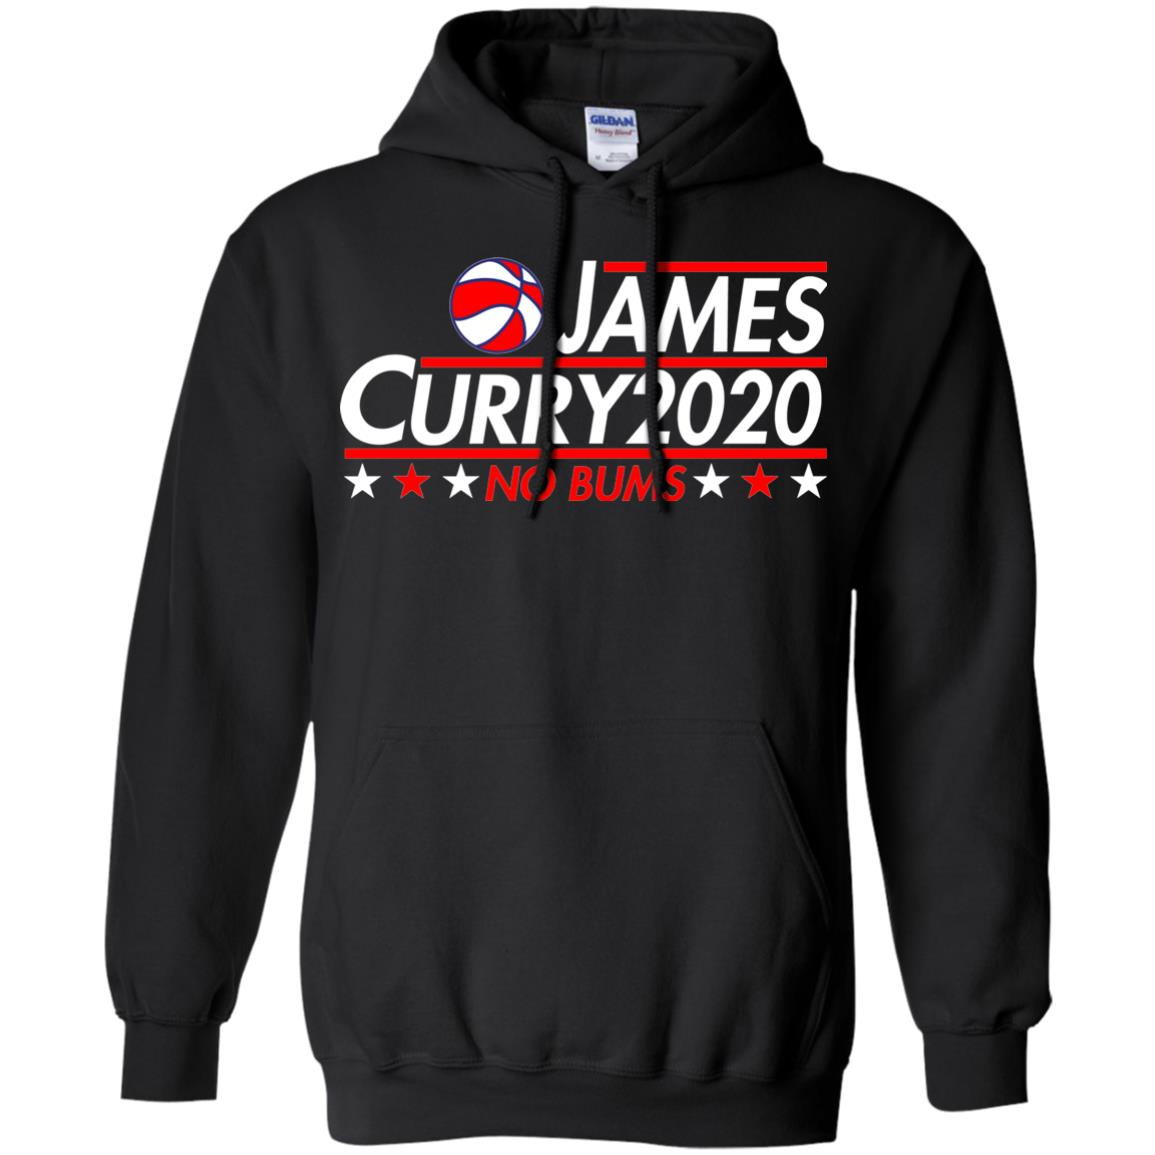 image 2170 - James Curry 2020 shirt No Bums: James & Curry for President